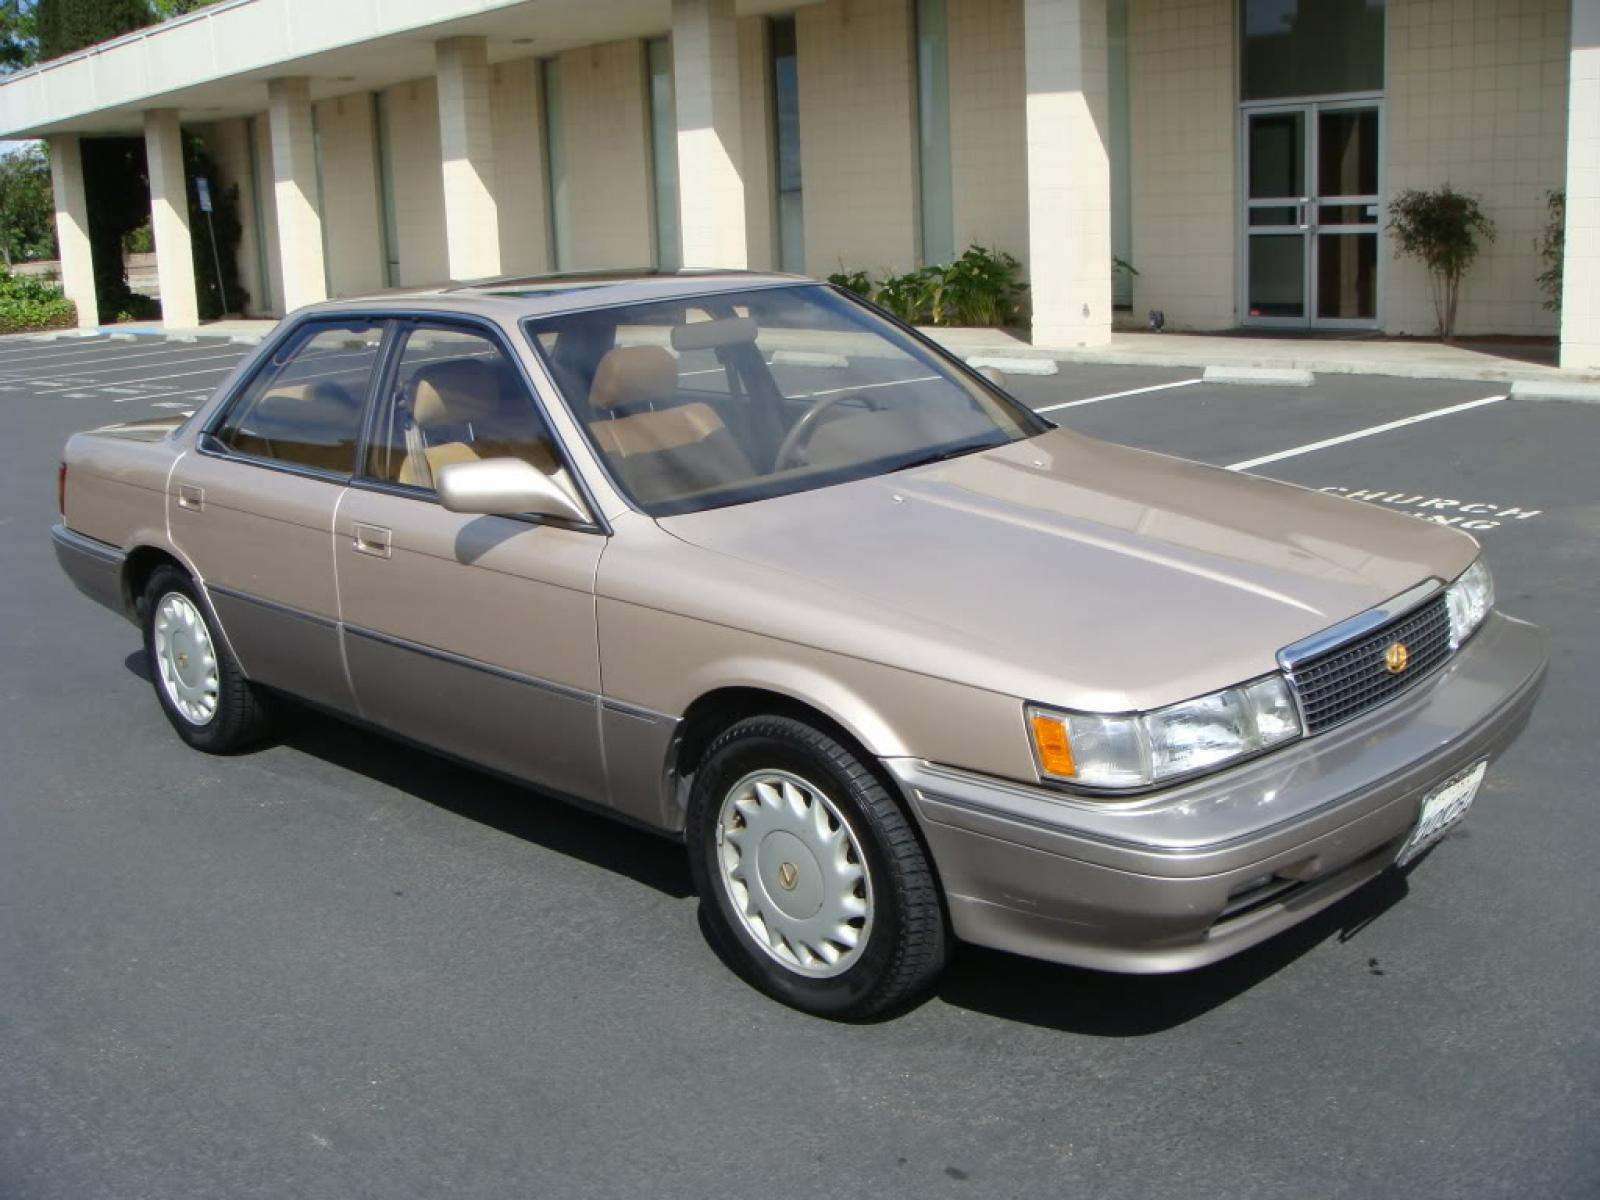 1991 Lexus ES 250 - Information and photos - ZombieDrive